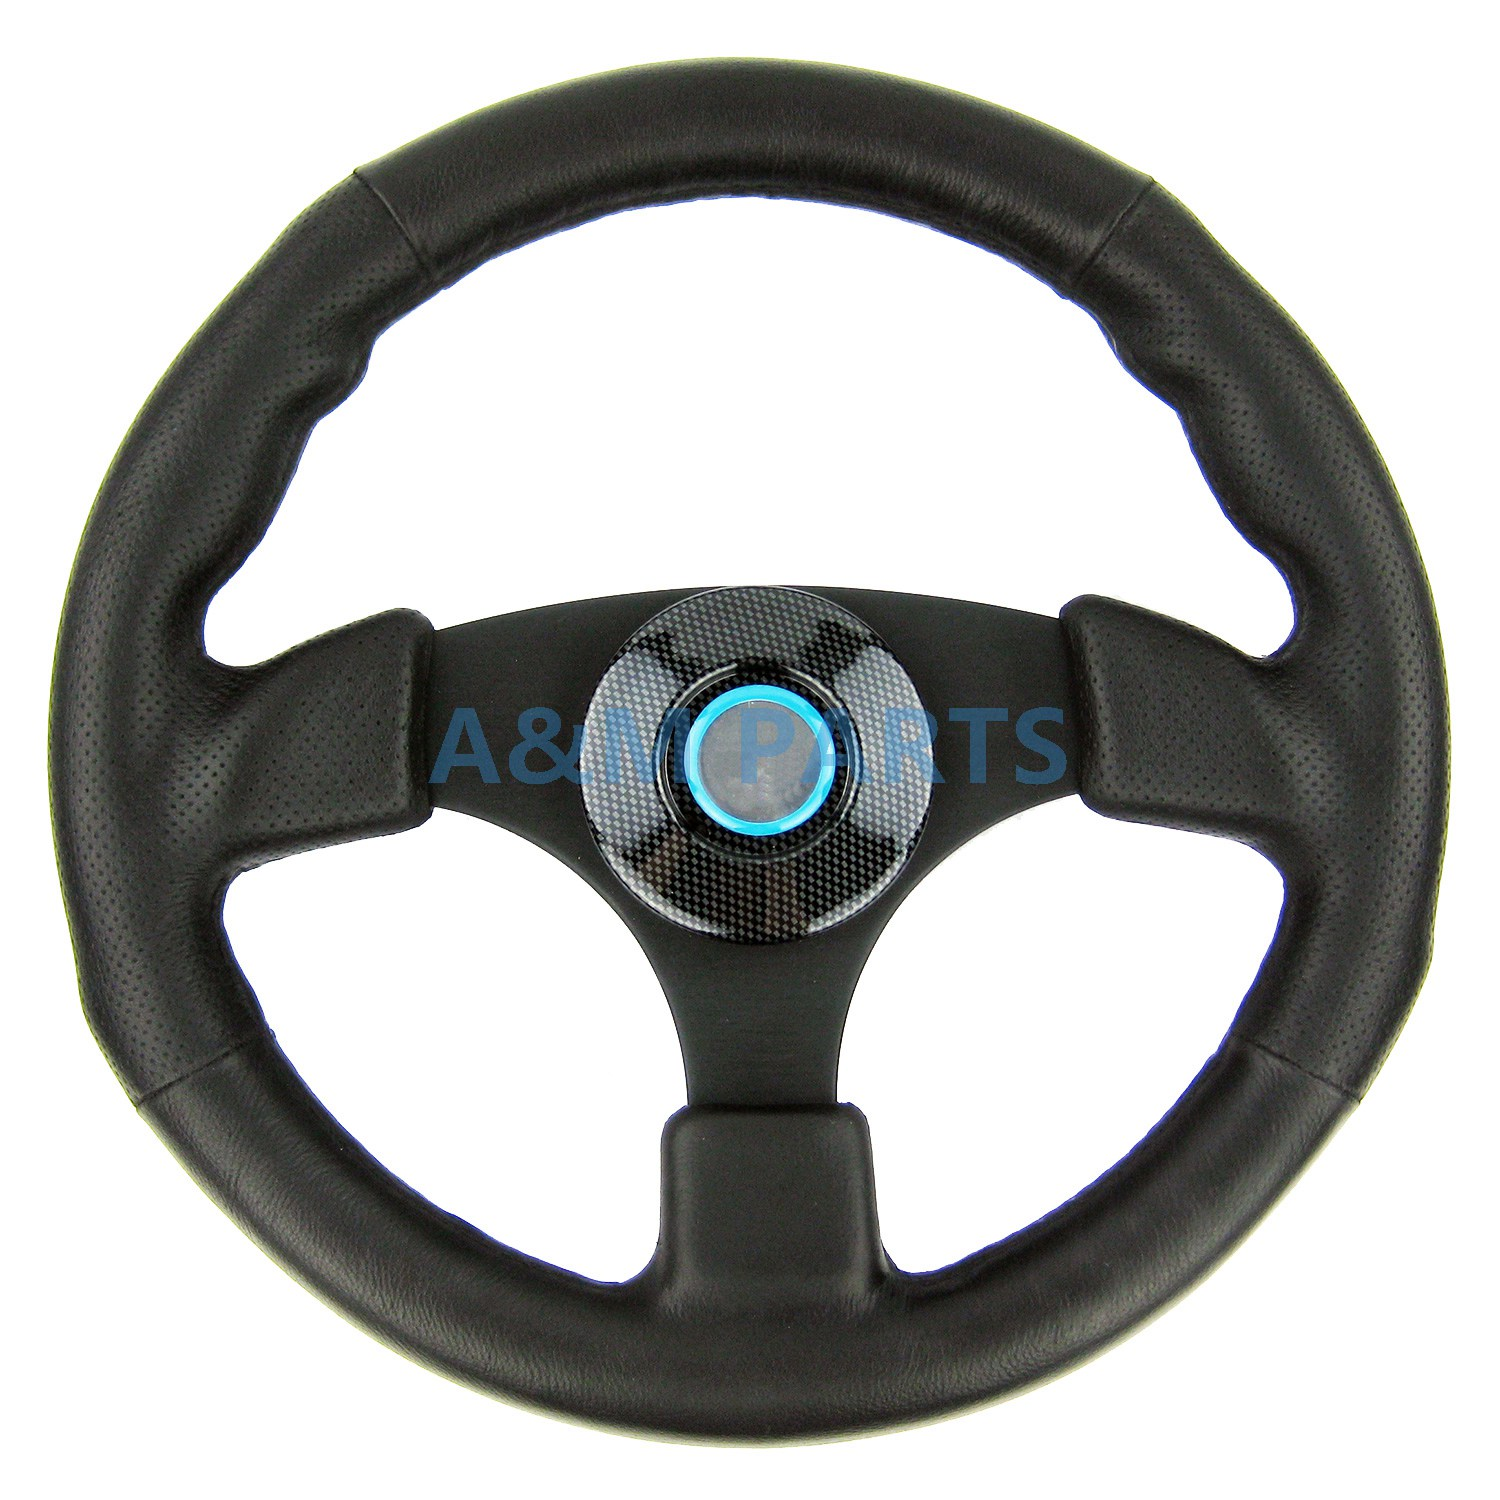 Sport Marine Steering Wheel Polyurethane Leather Grip Alloy Aluminum Spoke Boat Steering 13-1/2 цена и фото